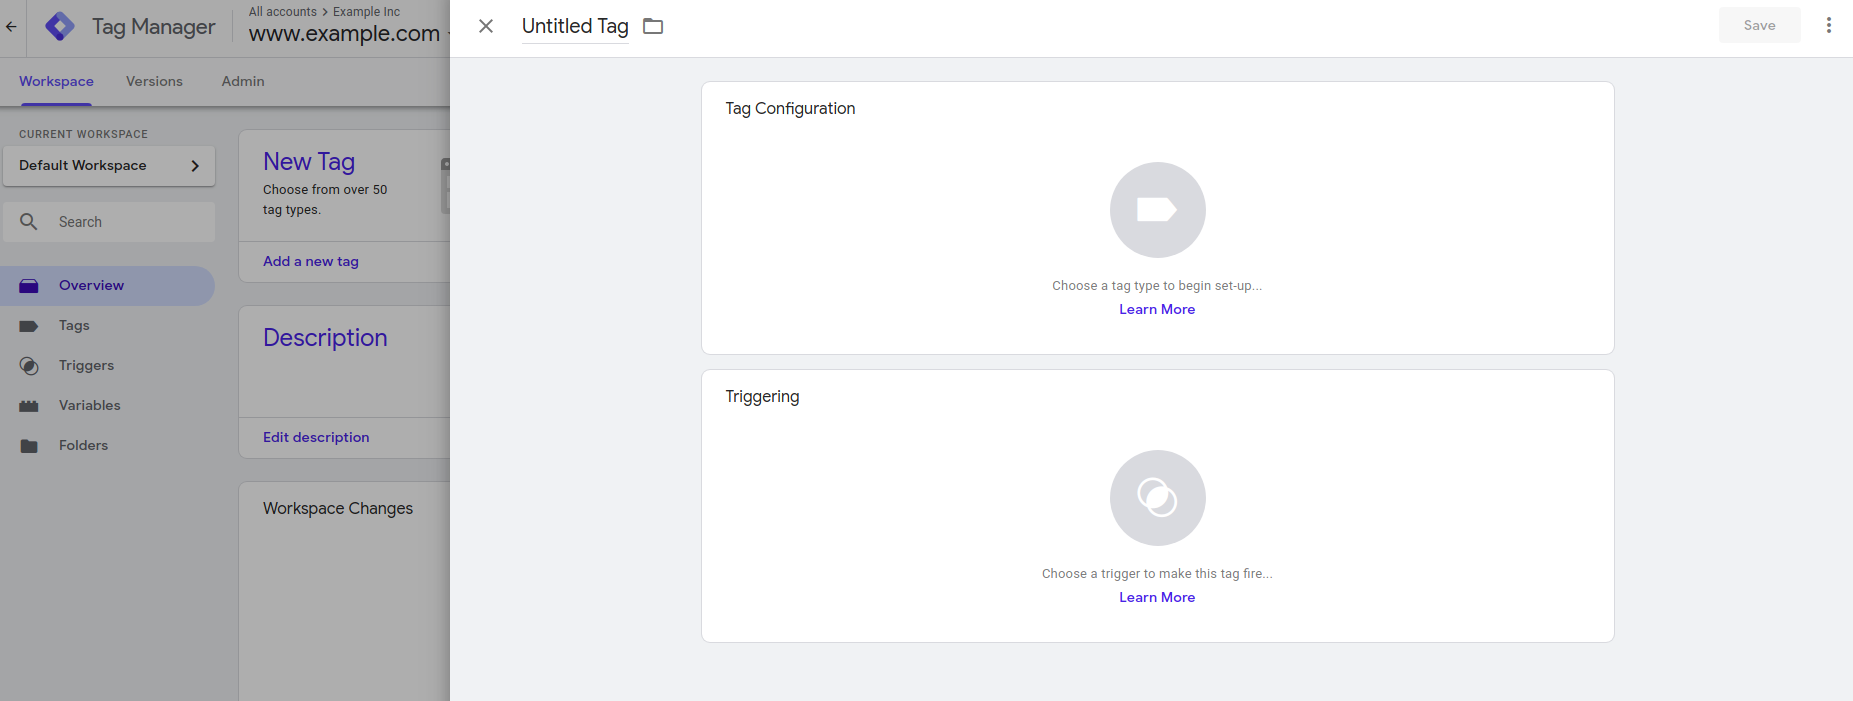 Creating a new tag